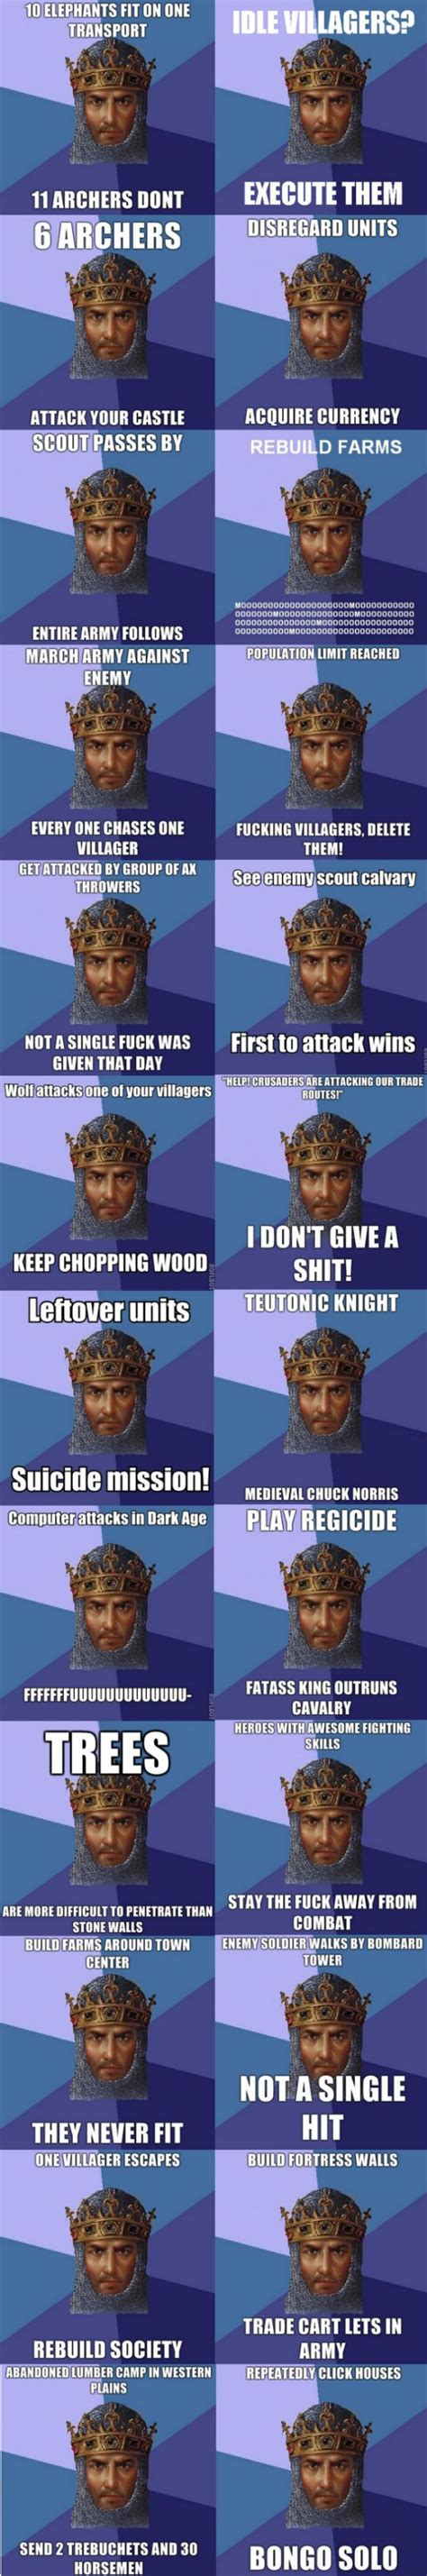 Age Of Empire Meme - age of empires logic meme weknowmemes memes